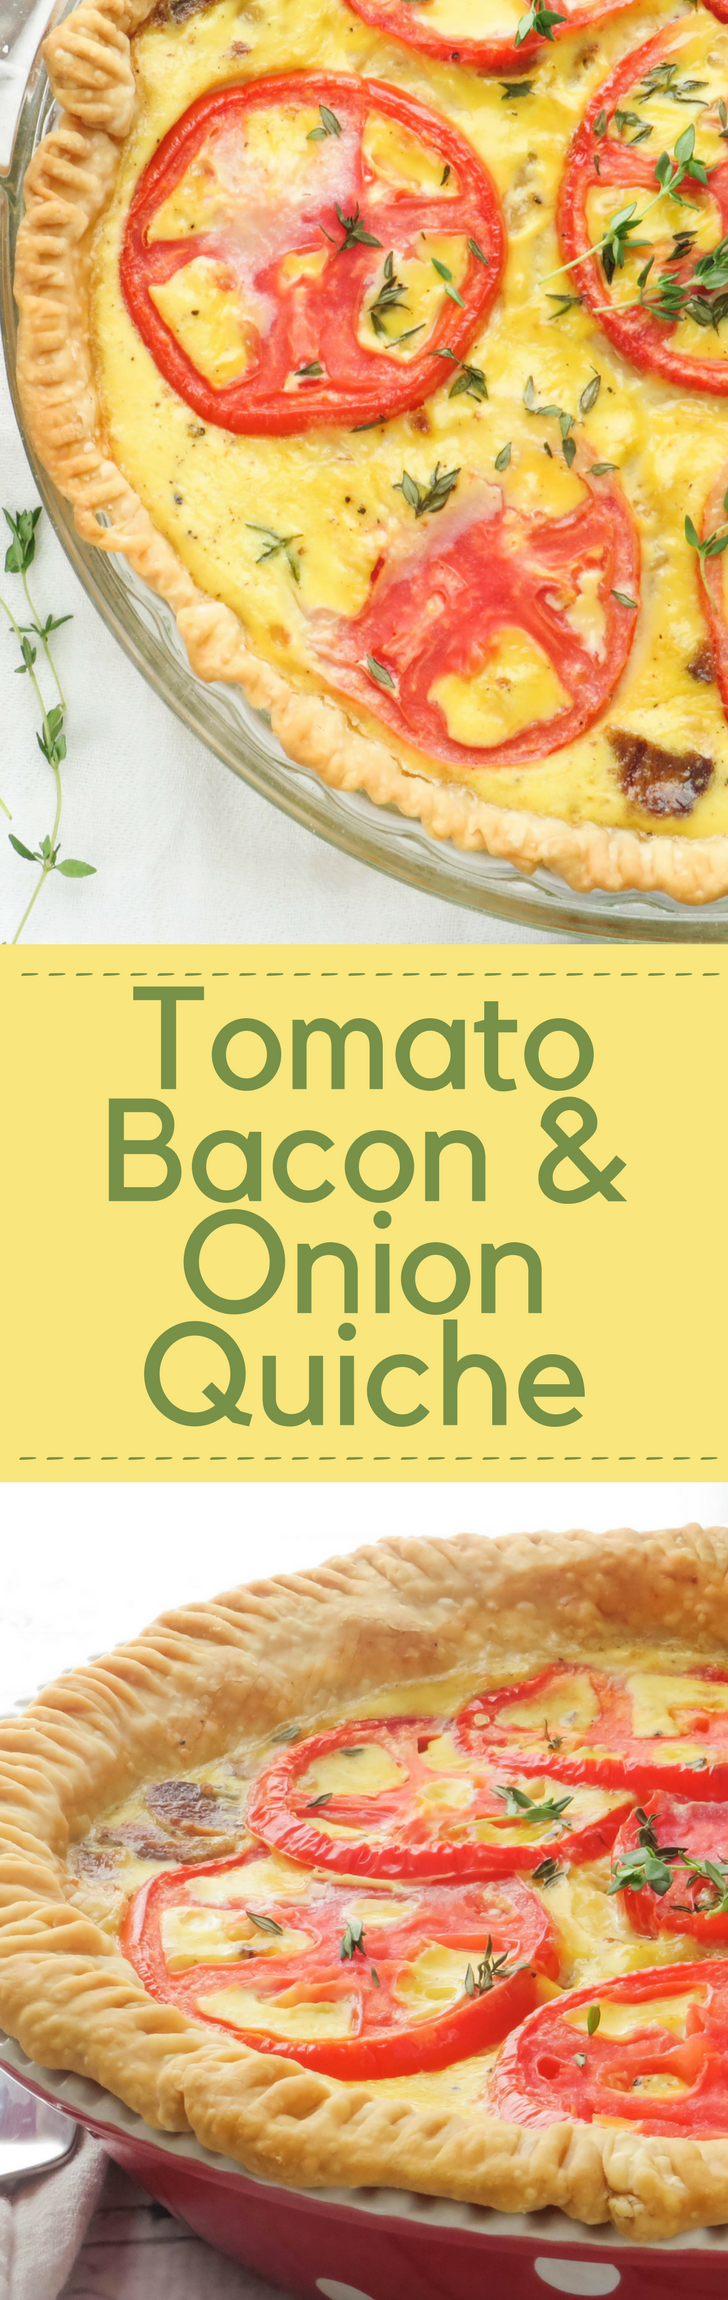 Need a quiche recipe that feeds a crowd?  Tomato Bacon and Onion Quiche makes two pies and is perfect for breakfast or brunch and holiday entertaining!